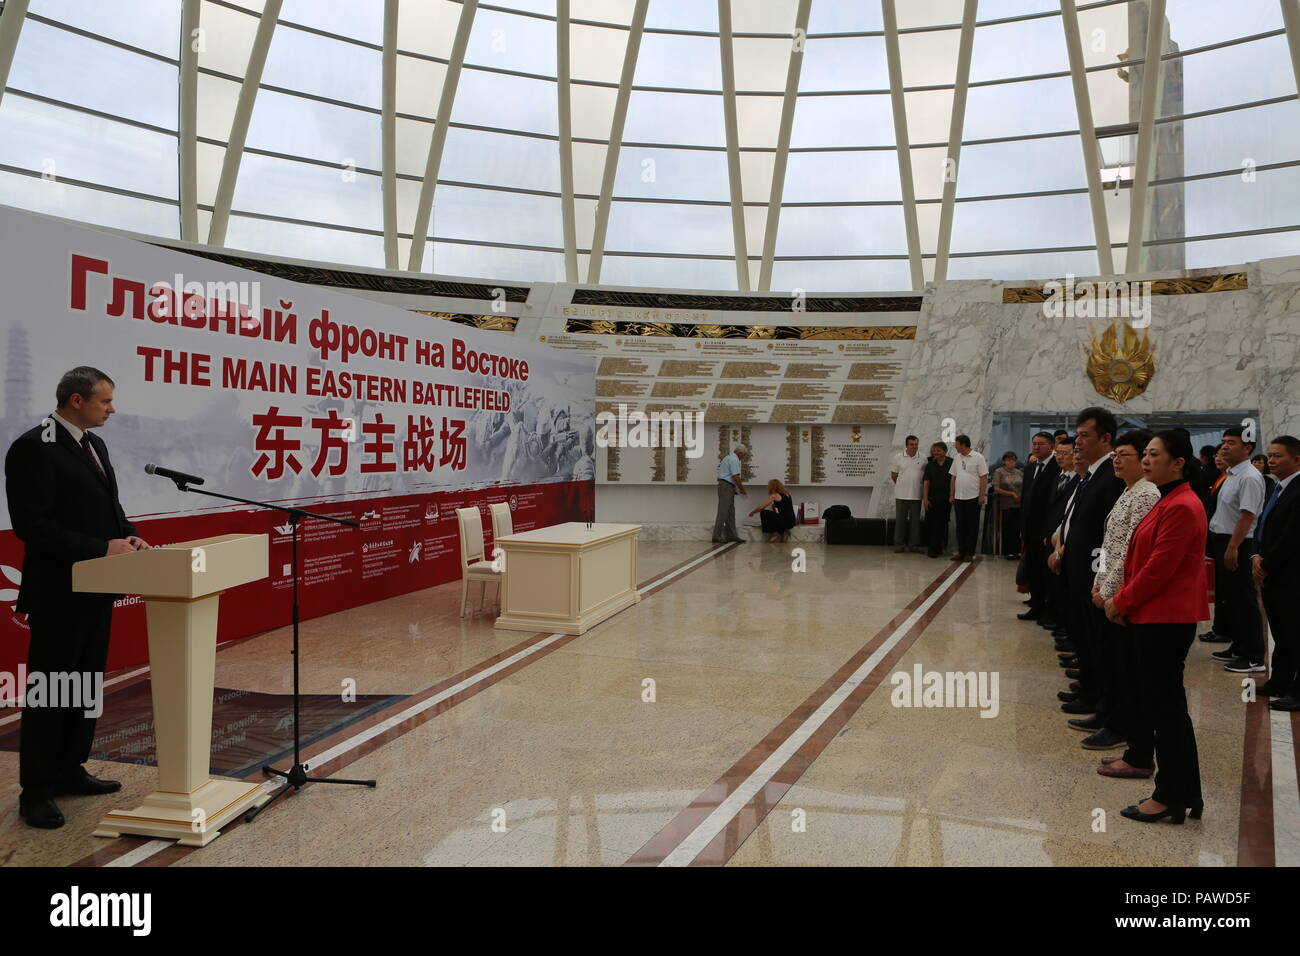 Minsk. 25th July, 2018. Photo taken on July 25, 2018 shows the opening ceremony of 'The Main Eastern Battlefield' exhibition in Minsk, Belarus. The exhibition co-hosted by China and Belarus opened in Minsk on Wednesday. Themed on commemorating China's contribution for the victory of the World Anti-Fascist War, the exhibition offers more than 140 historical photos and other valuable historical relics. Credit: Wei Zhongjie/Xinhua/Alamy Live News - Stock Image